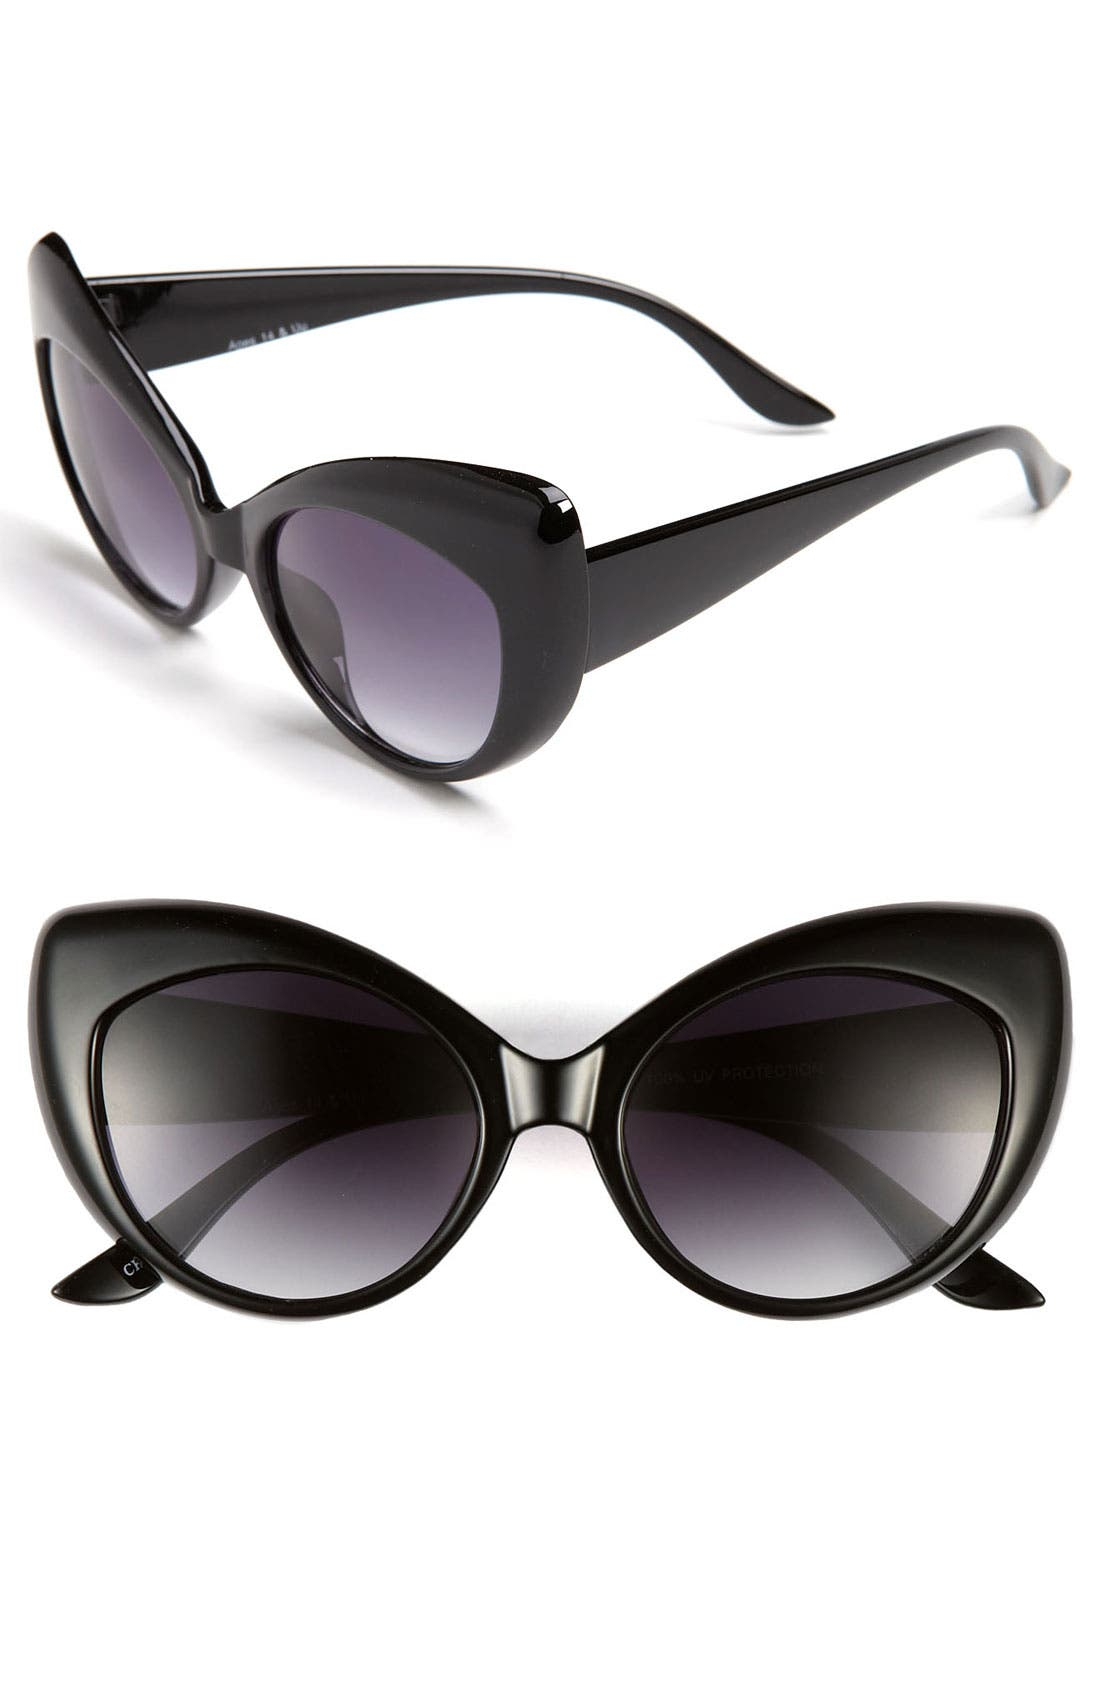 Main Image - FE NY 'Lindy Hop' Cat's Eye Sunglasses